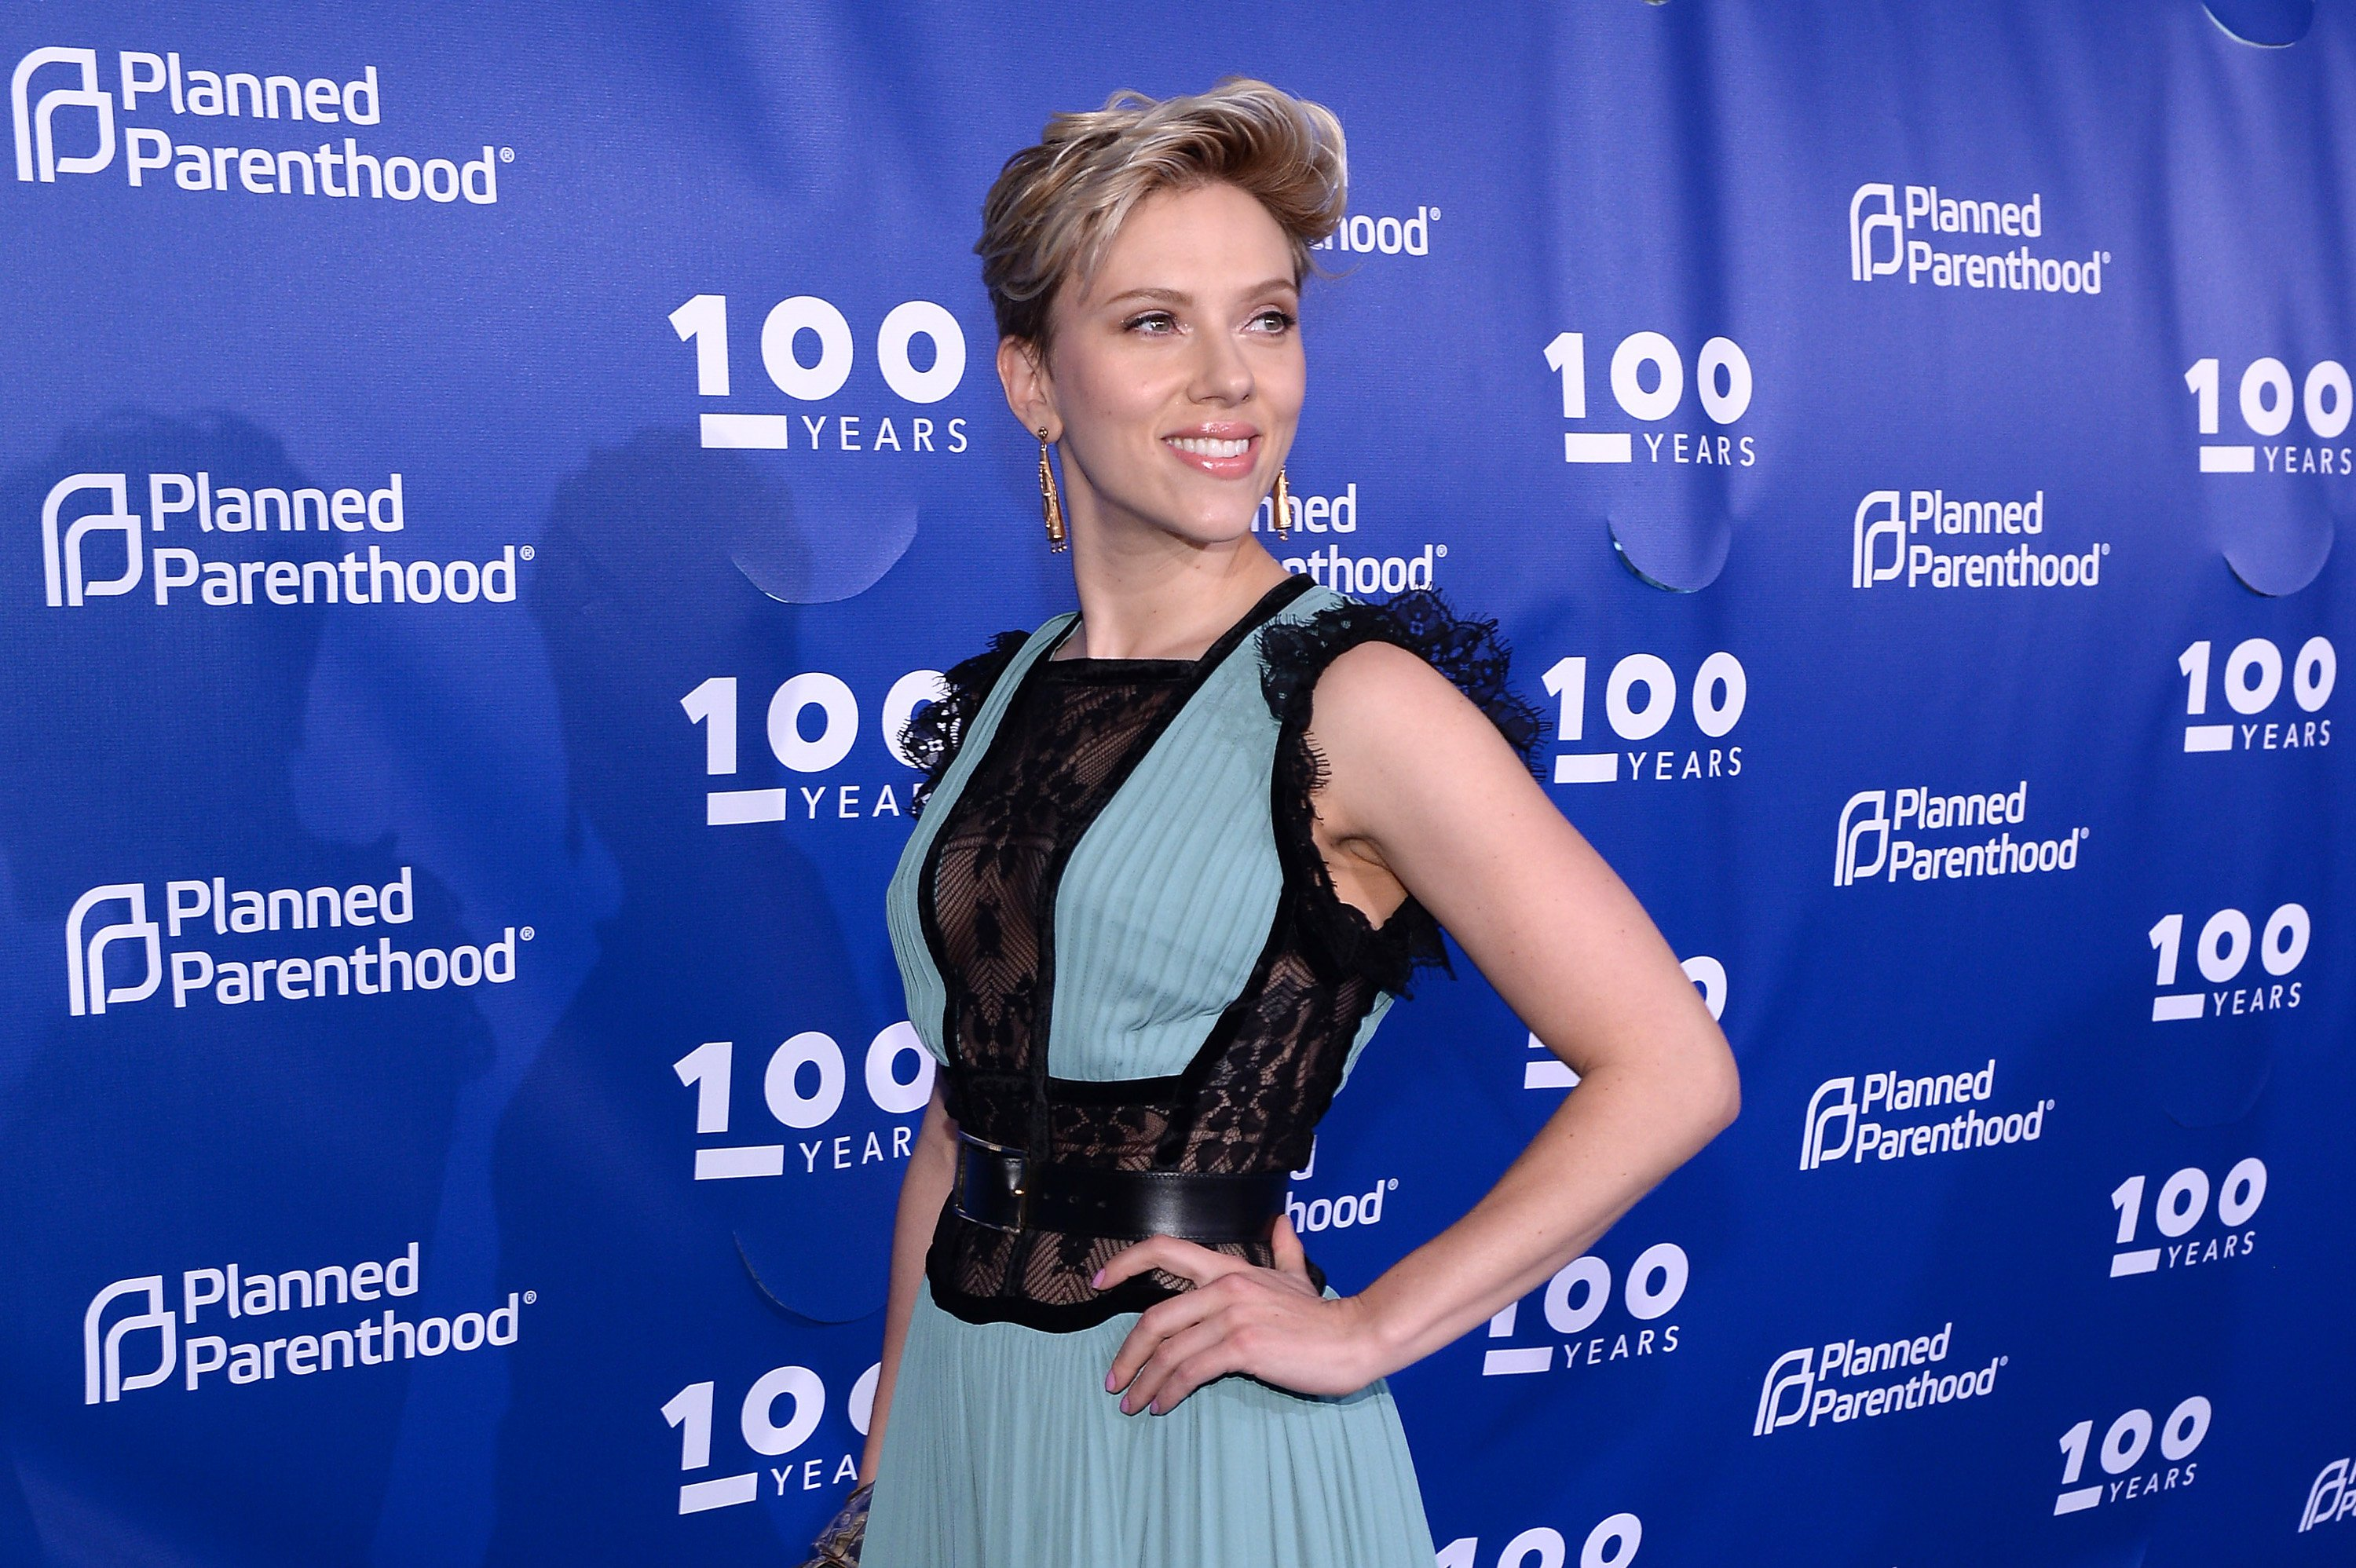 Image Source: Getty Images/Scarlett at an event of Planned Parenthood